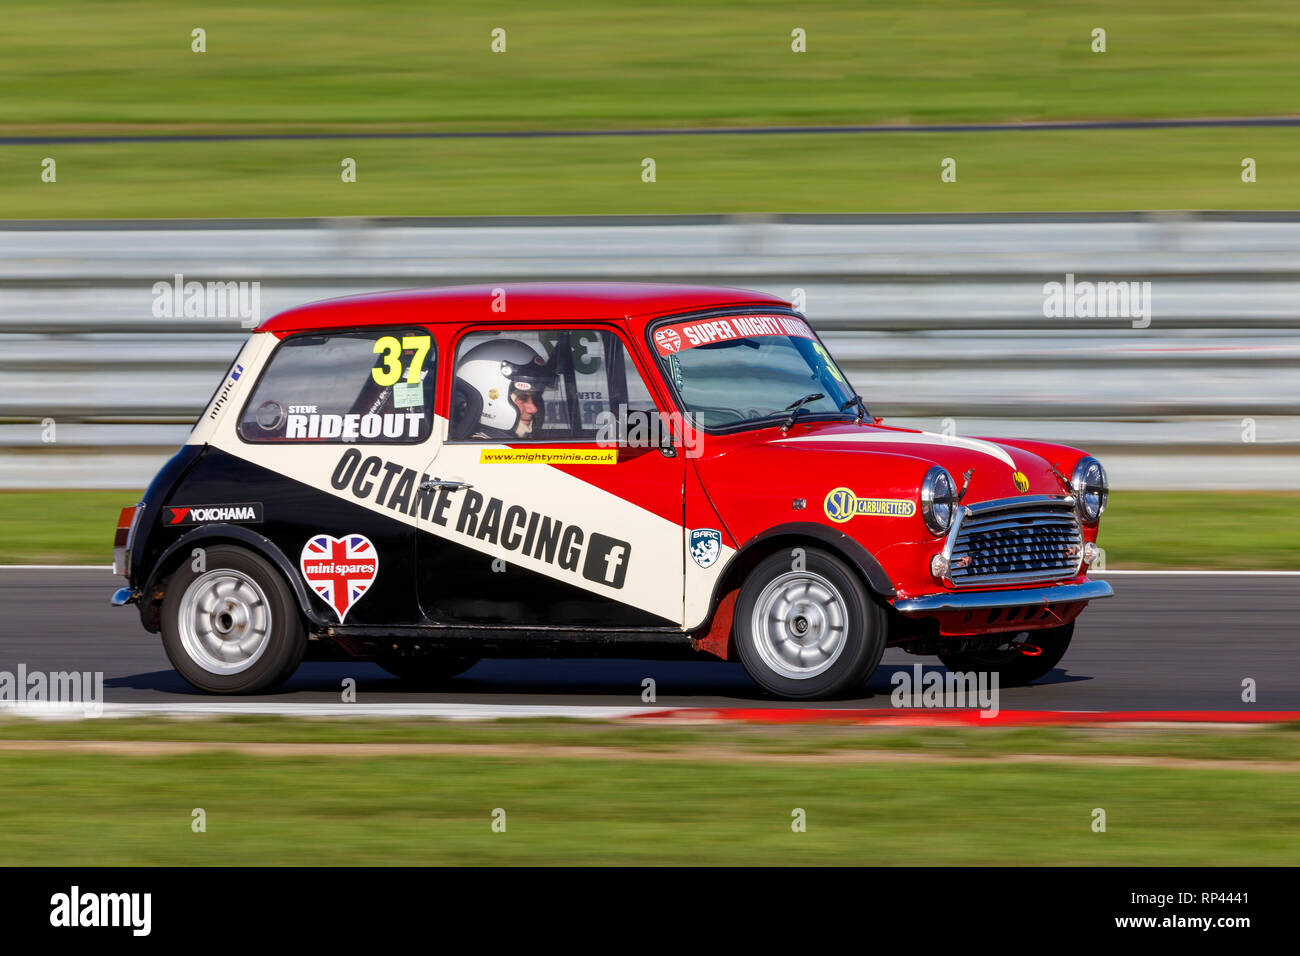 Steven Rideout in his Super Mighty Minis entrant to the Championship race at Snetterton 2018, Norfolk, UK. - Stock Image